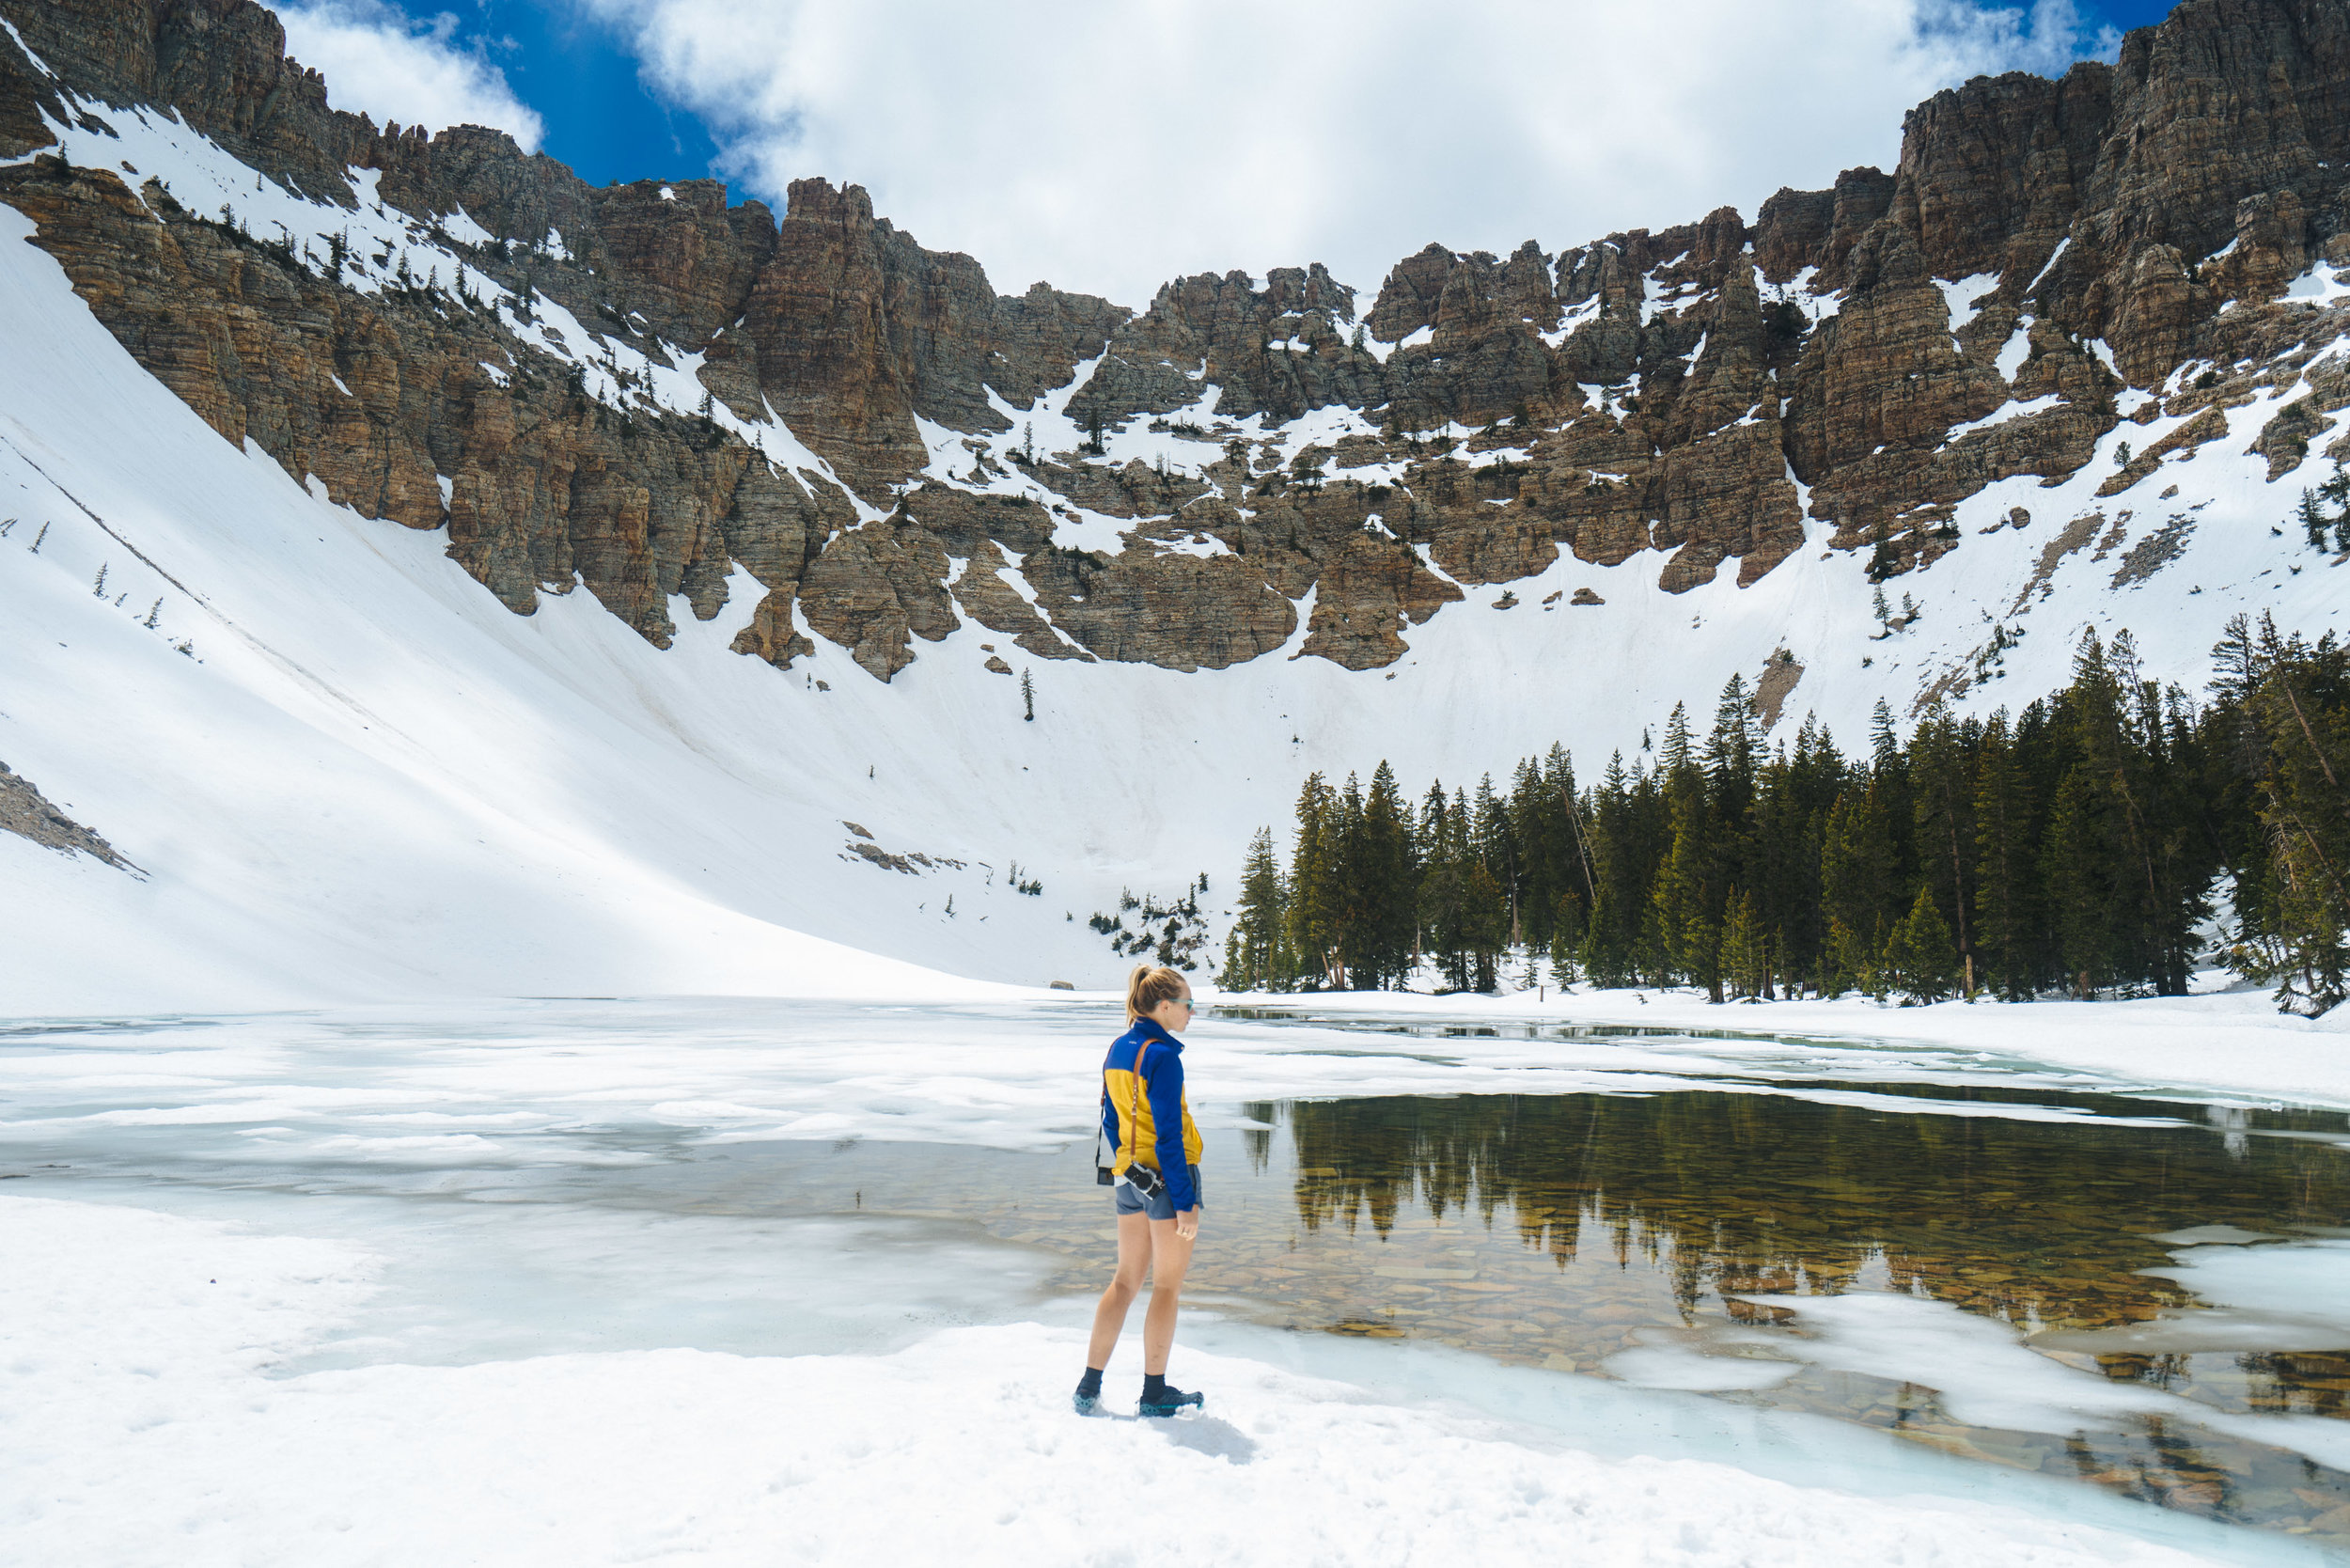 Baker Lake, Great Basin NP, Nevada while on a training hike in the snow